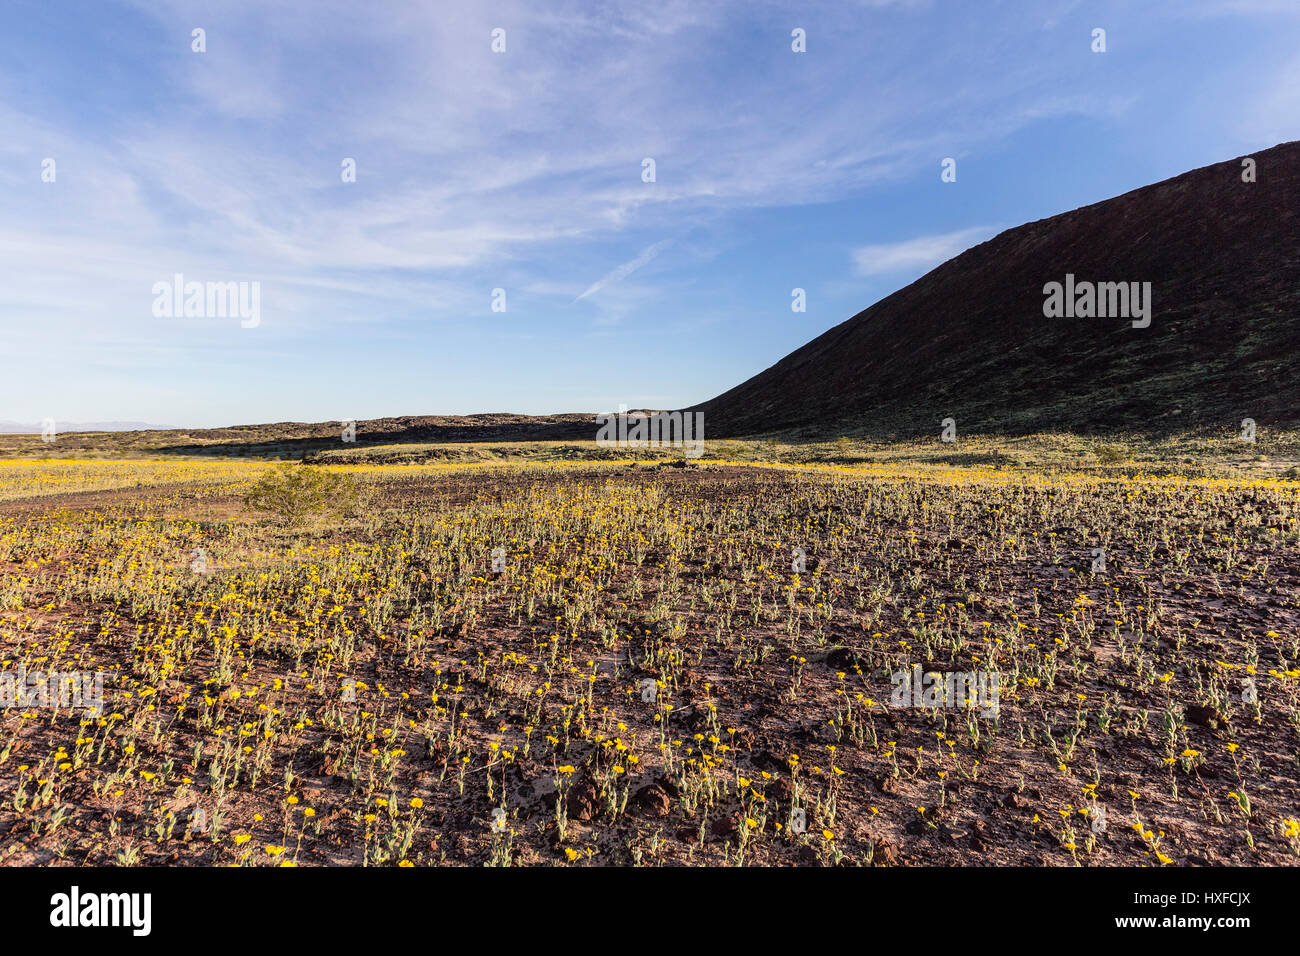 Amboy California Desert Mojave Stock Photos \u0026 Amboy California ...